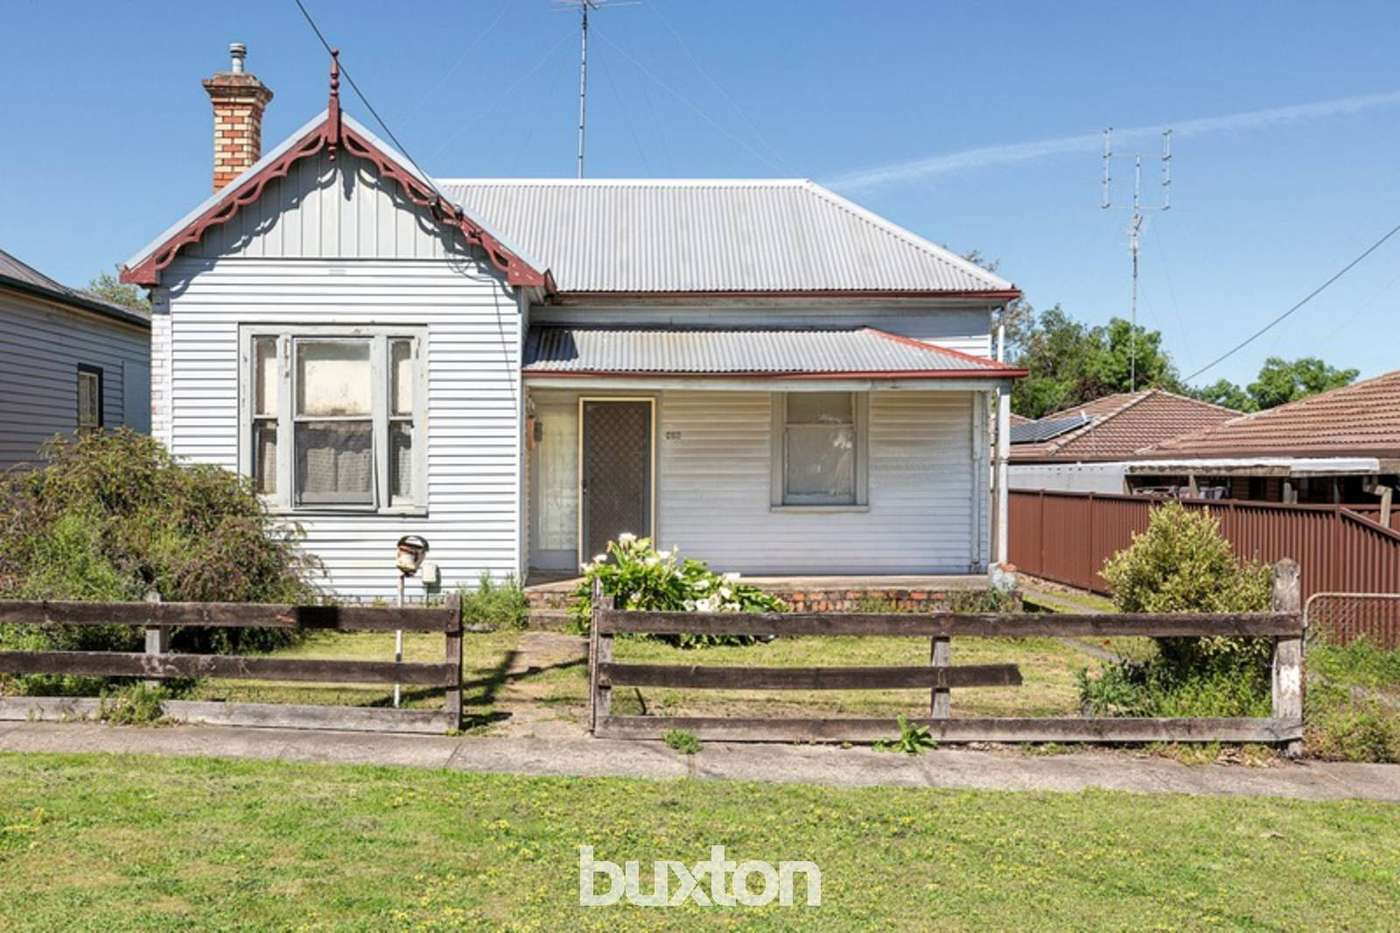 Main view of Homely house listing, 409 Drummond Street South, Ballarat Central, VIC 3350